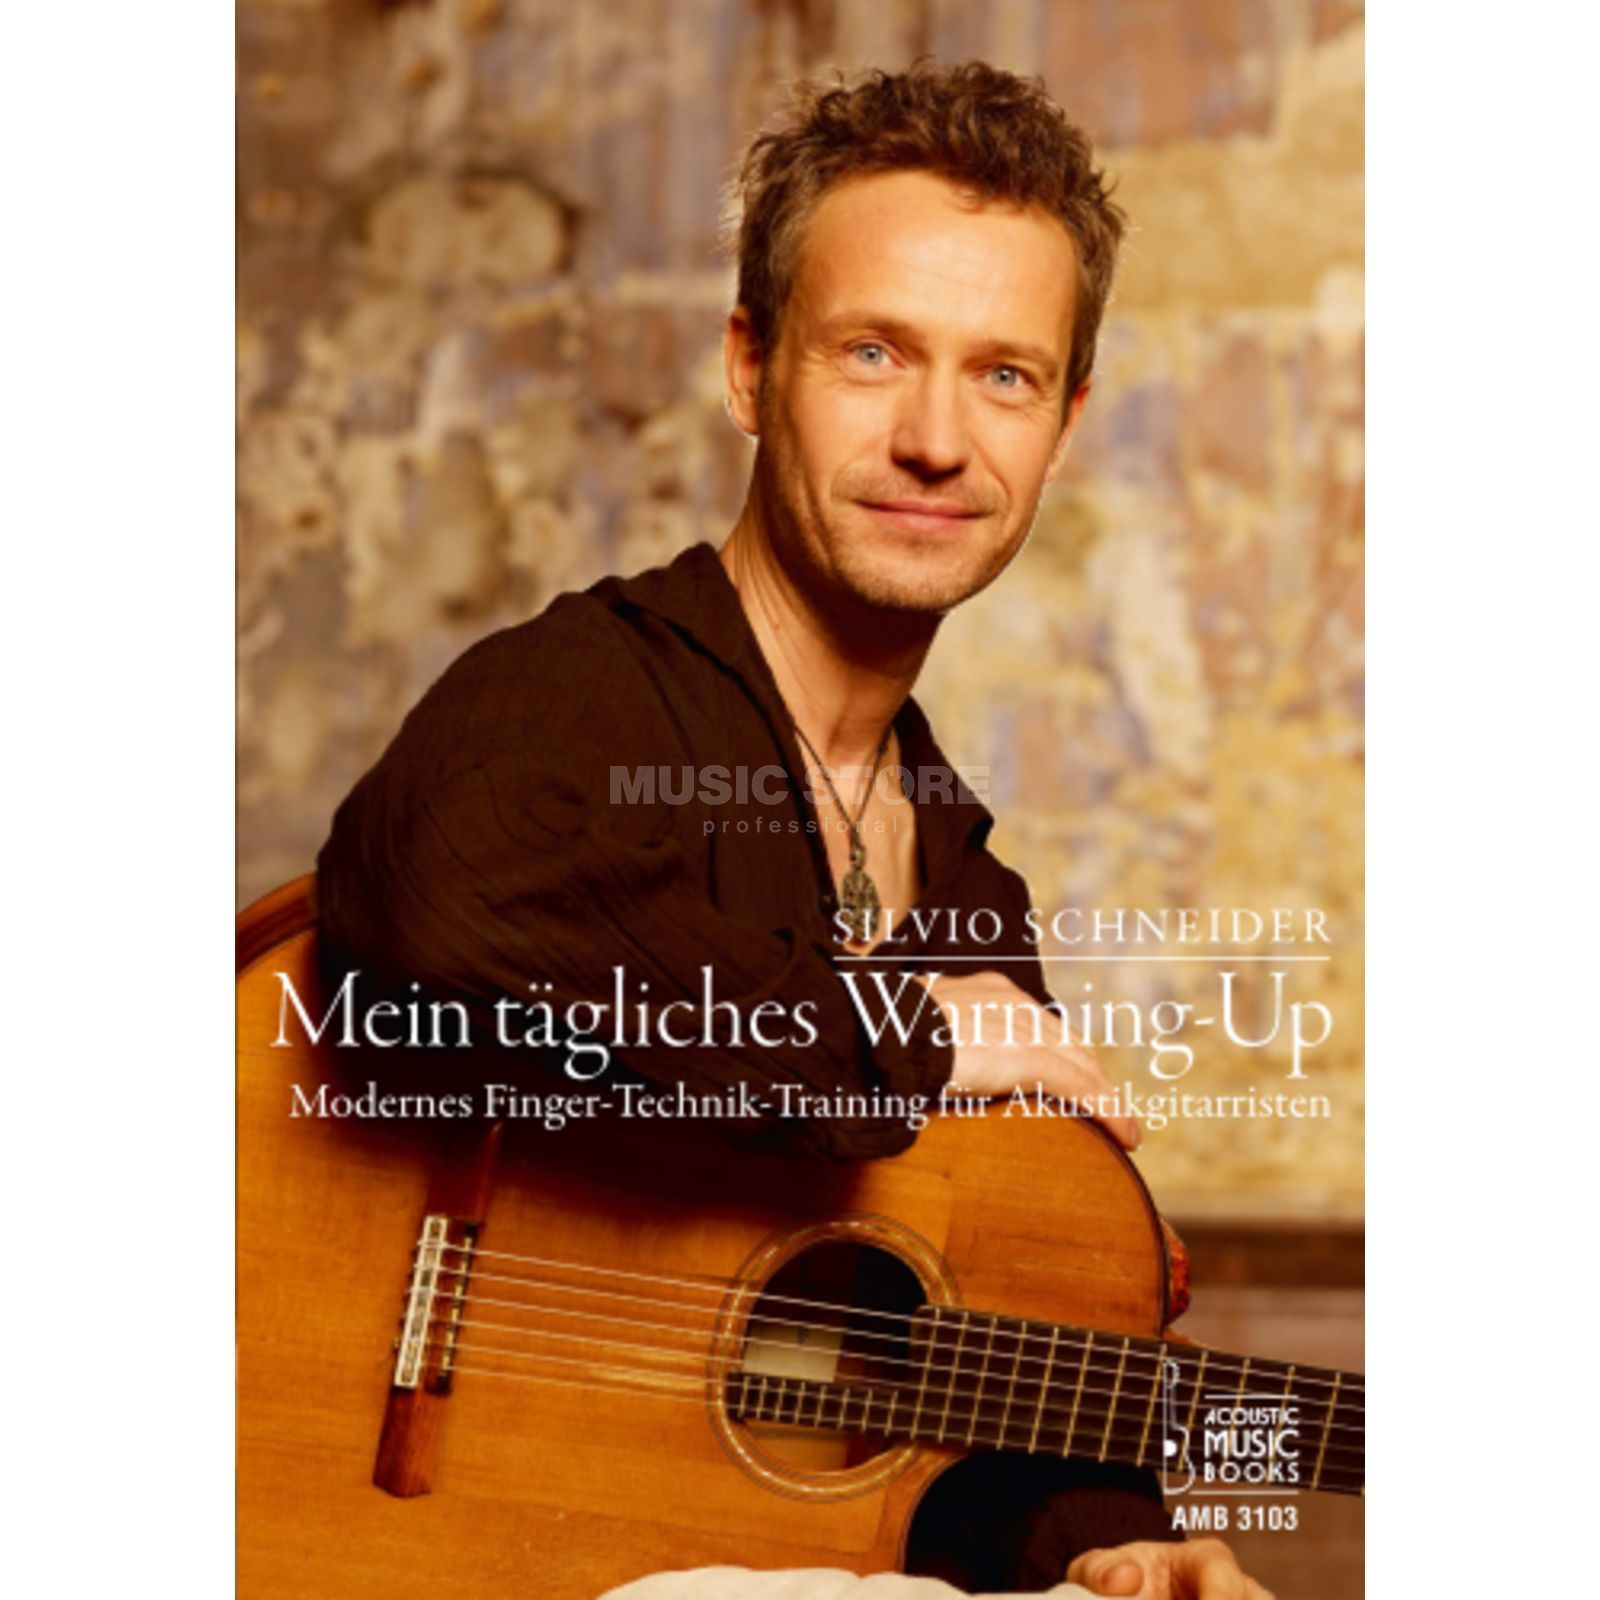 Acoustic Music Books Mein tägliches Warming-Up Produktbild